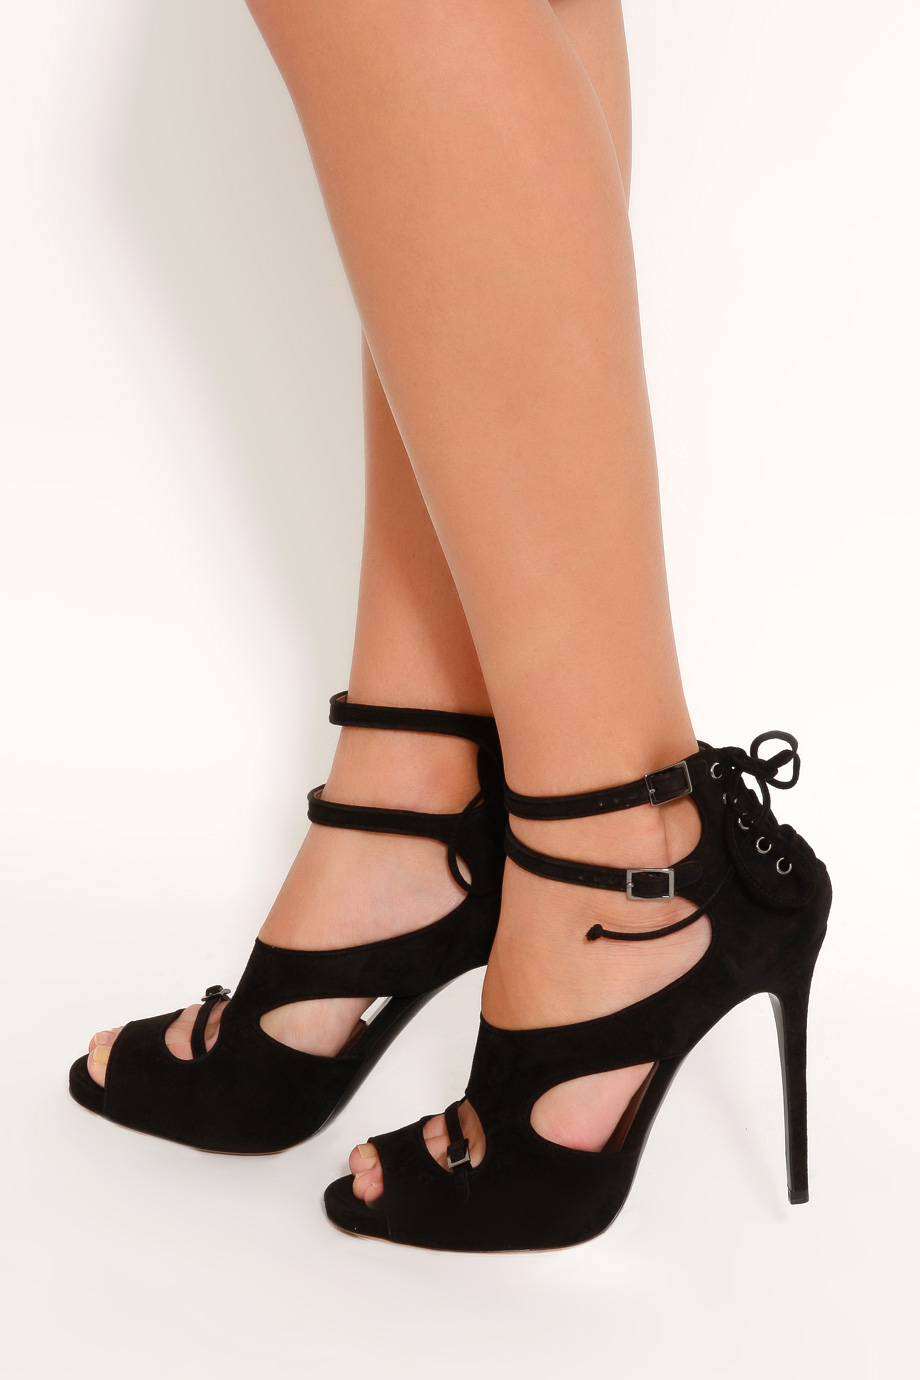 Tabitha Simmons Shoes Sizing